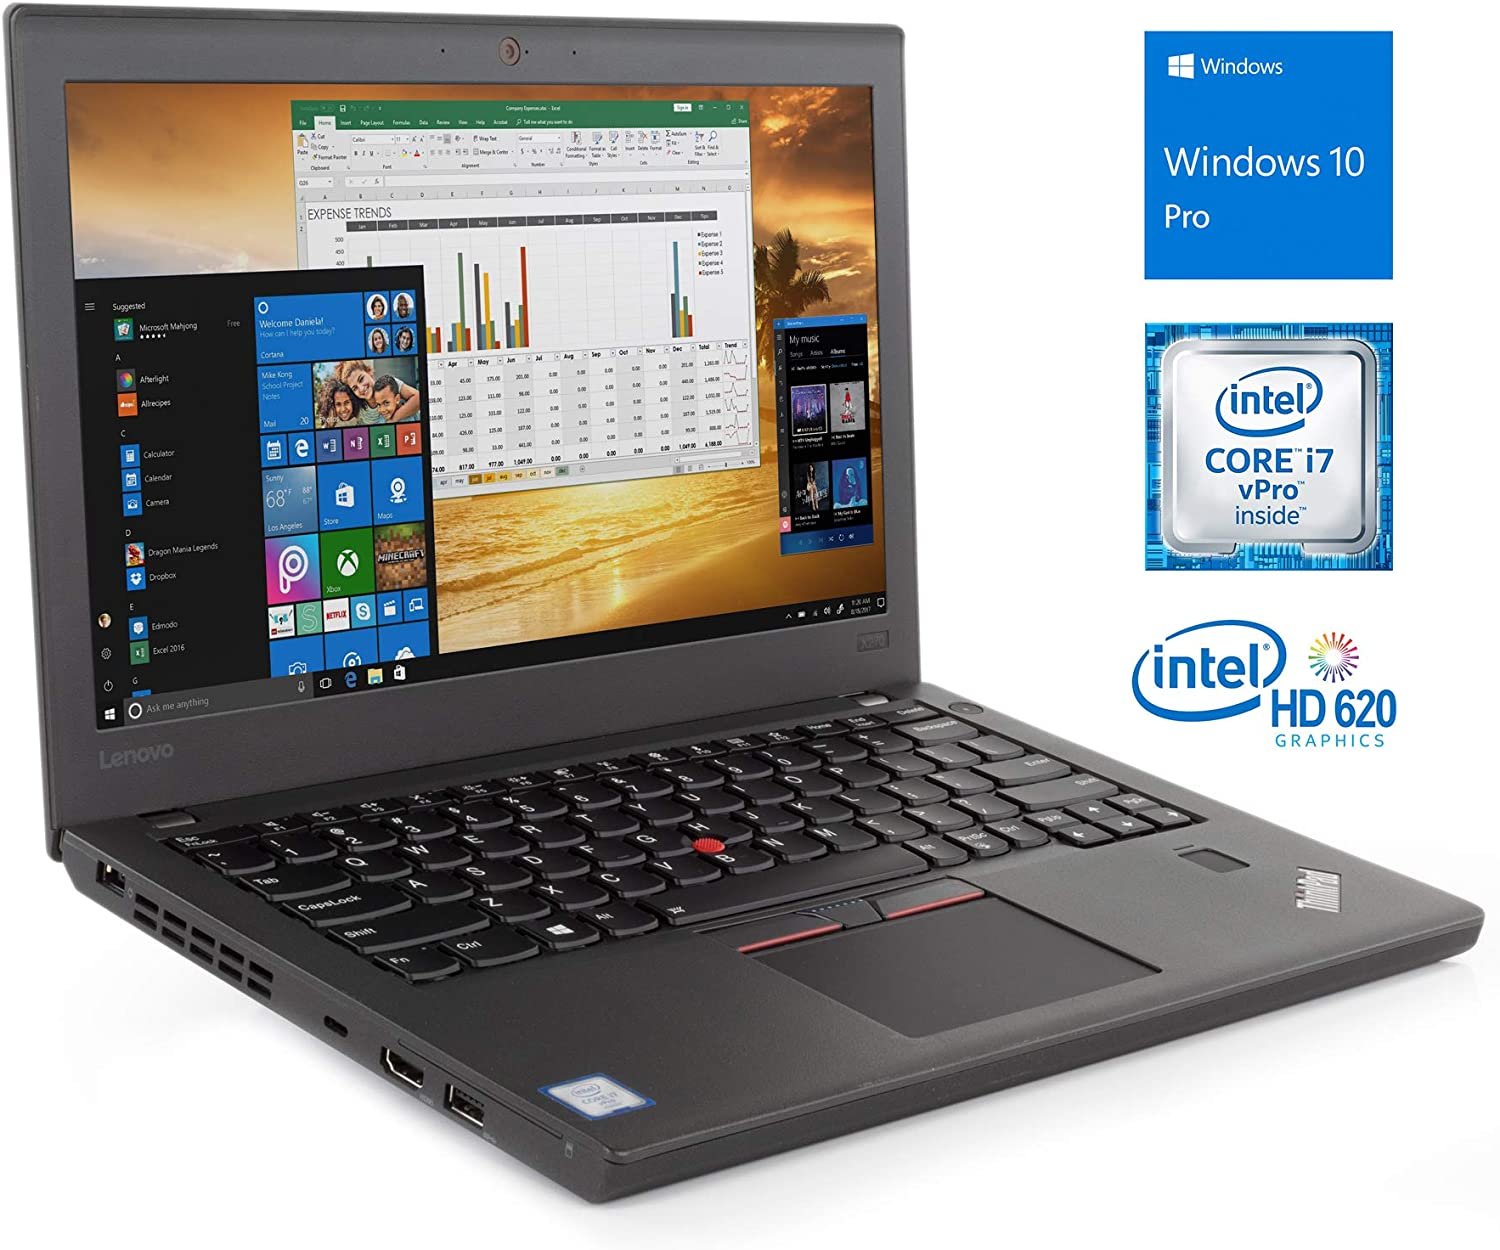 "Lenovo ThinkPad X270 Notebook, 12.5"" IPS HD, Intel Dual-Core i7-6600U Upto 3.4GHz, 16GB RAM, 256GB SSD, HDMI, Card Reader, Backlit Keyboard, Wi-Fi, Bluetooth, Windows 10 Pro"